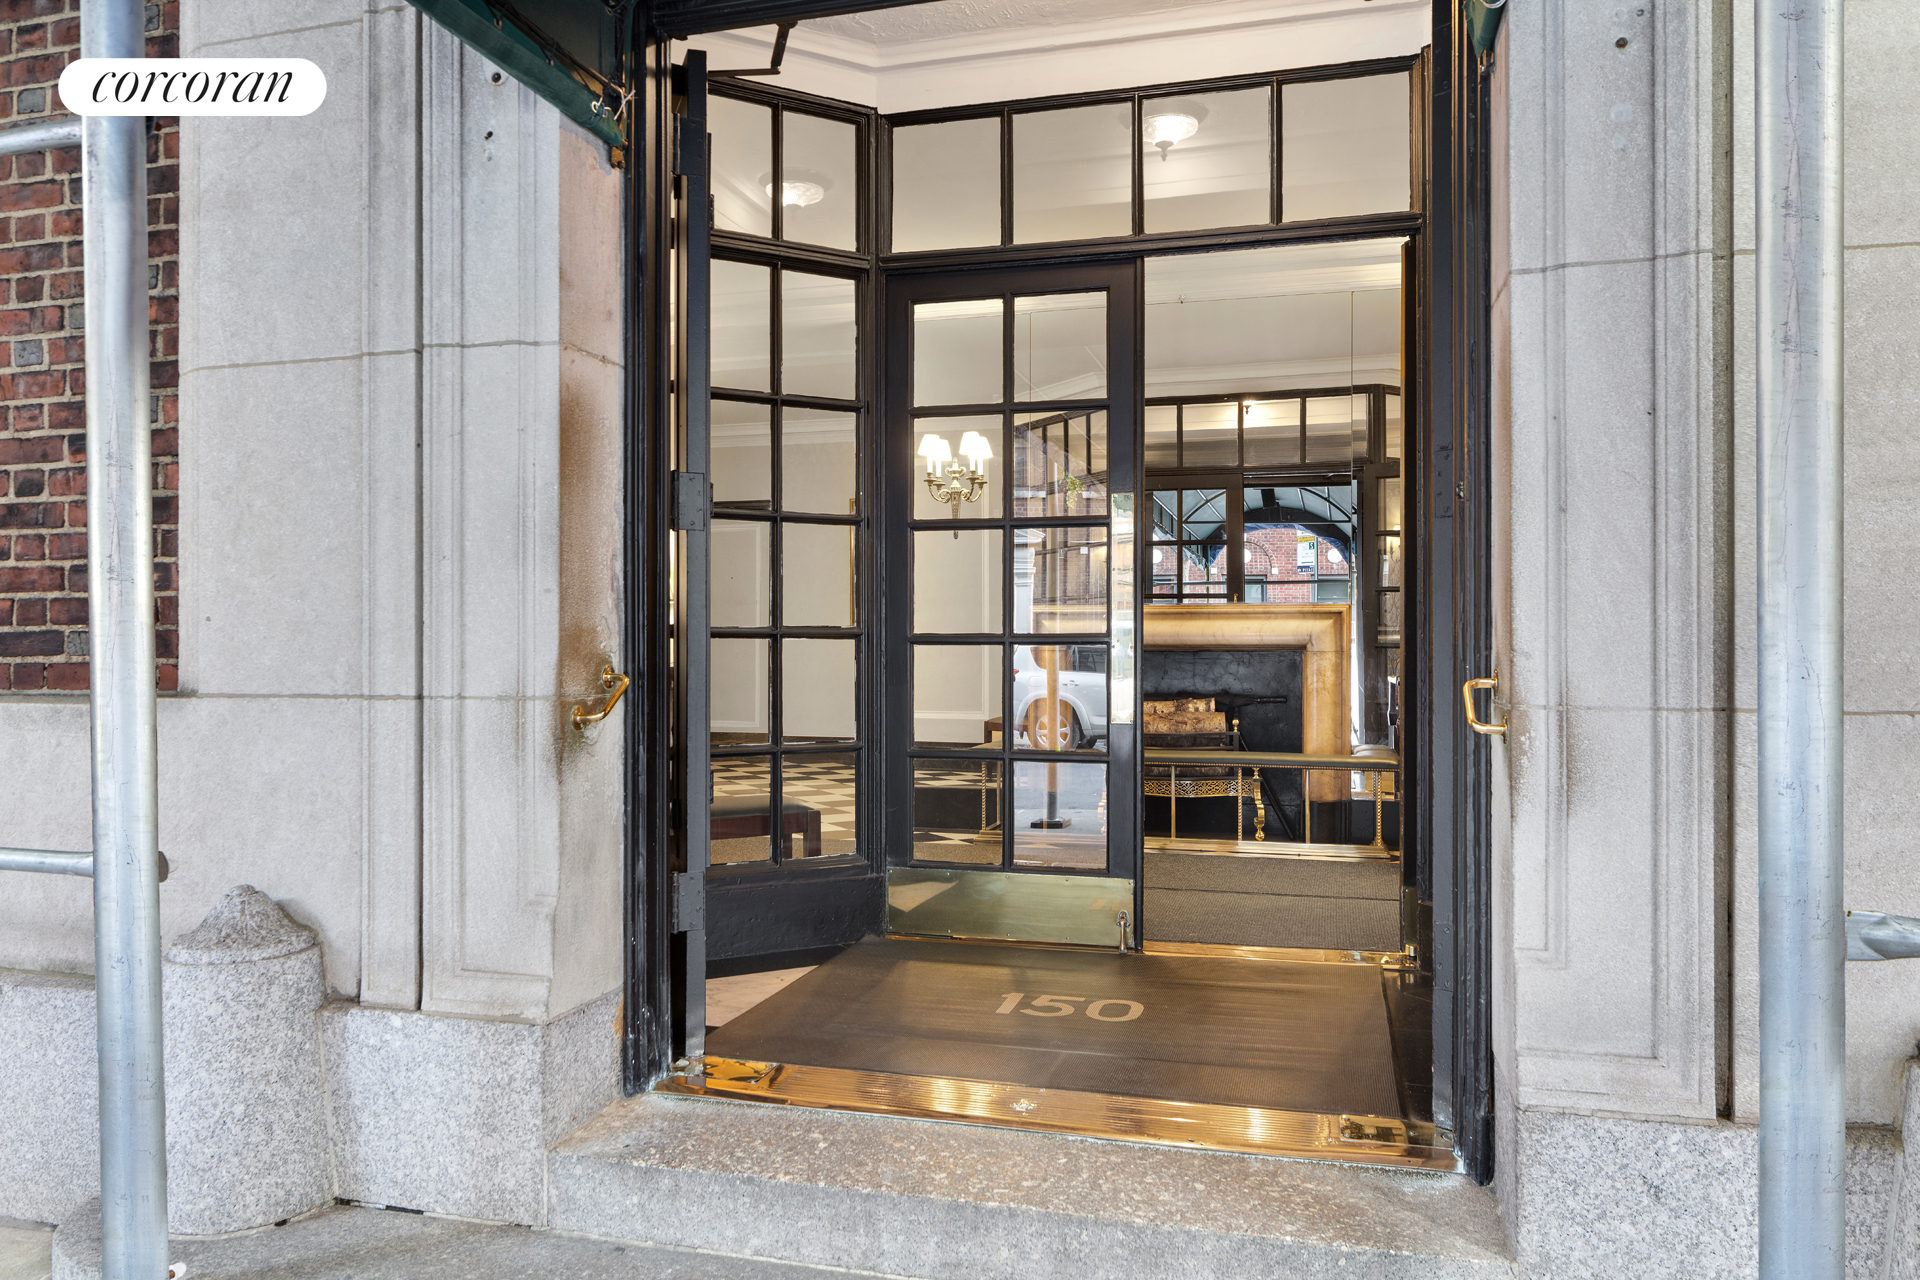 150 East 73rd Street, Building Entrance